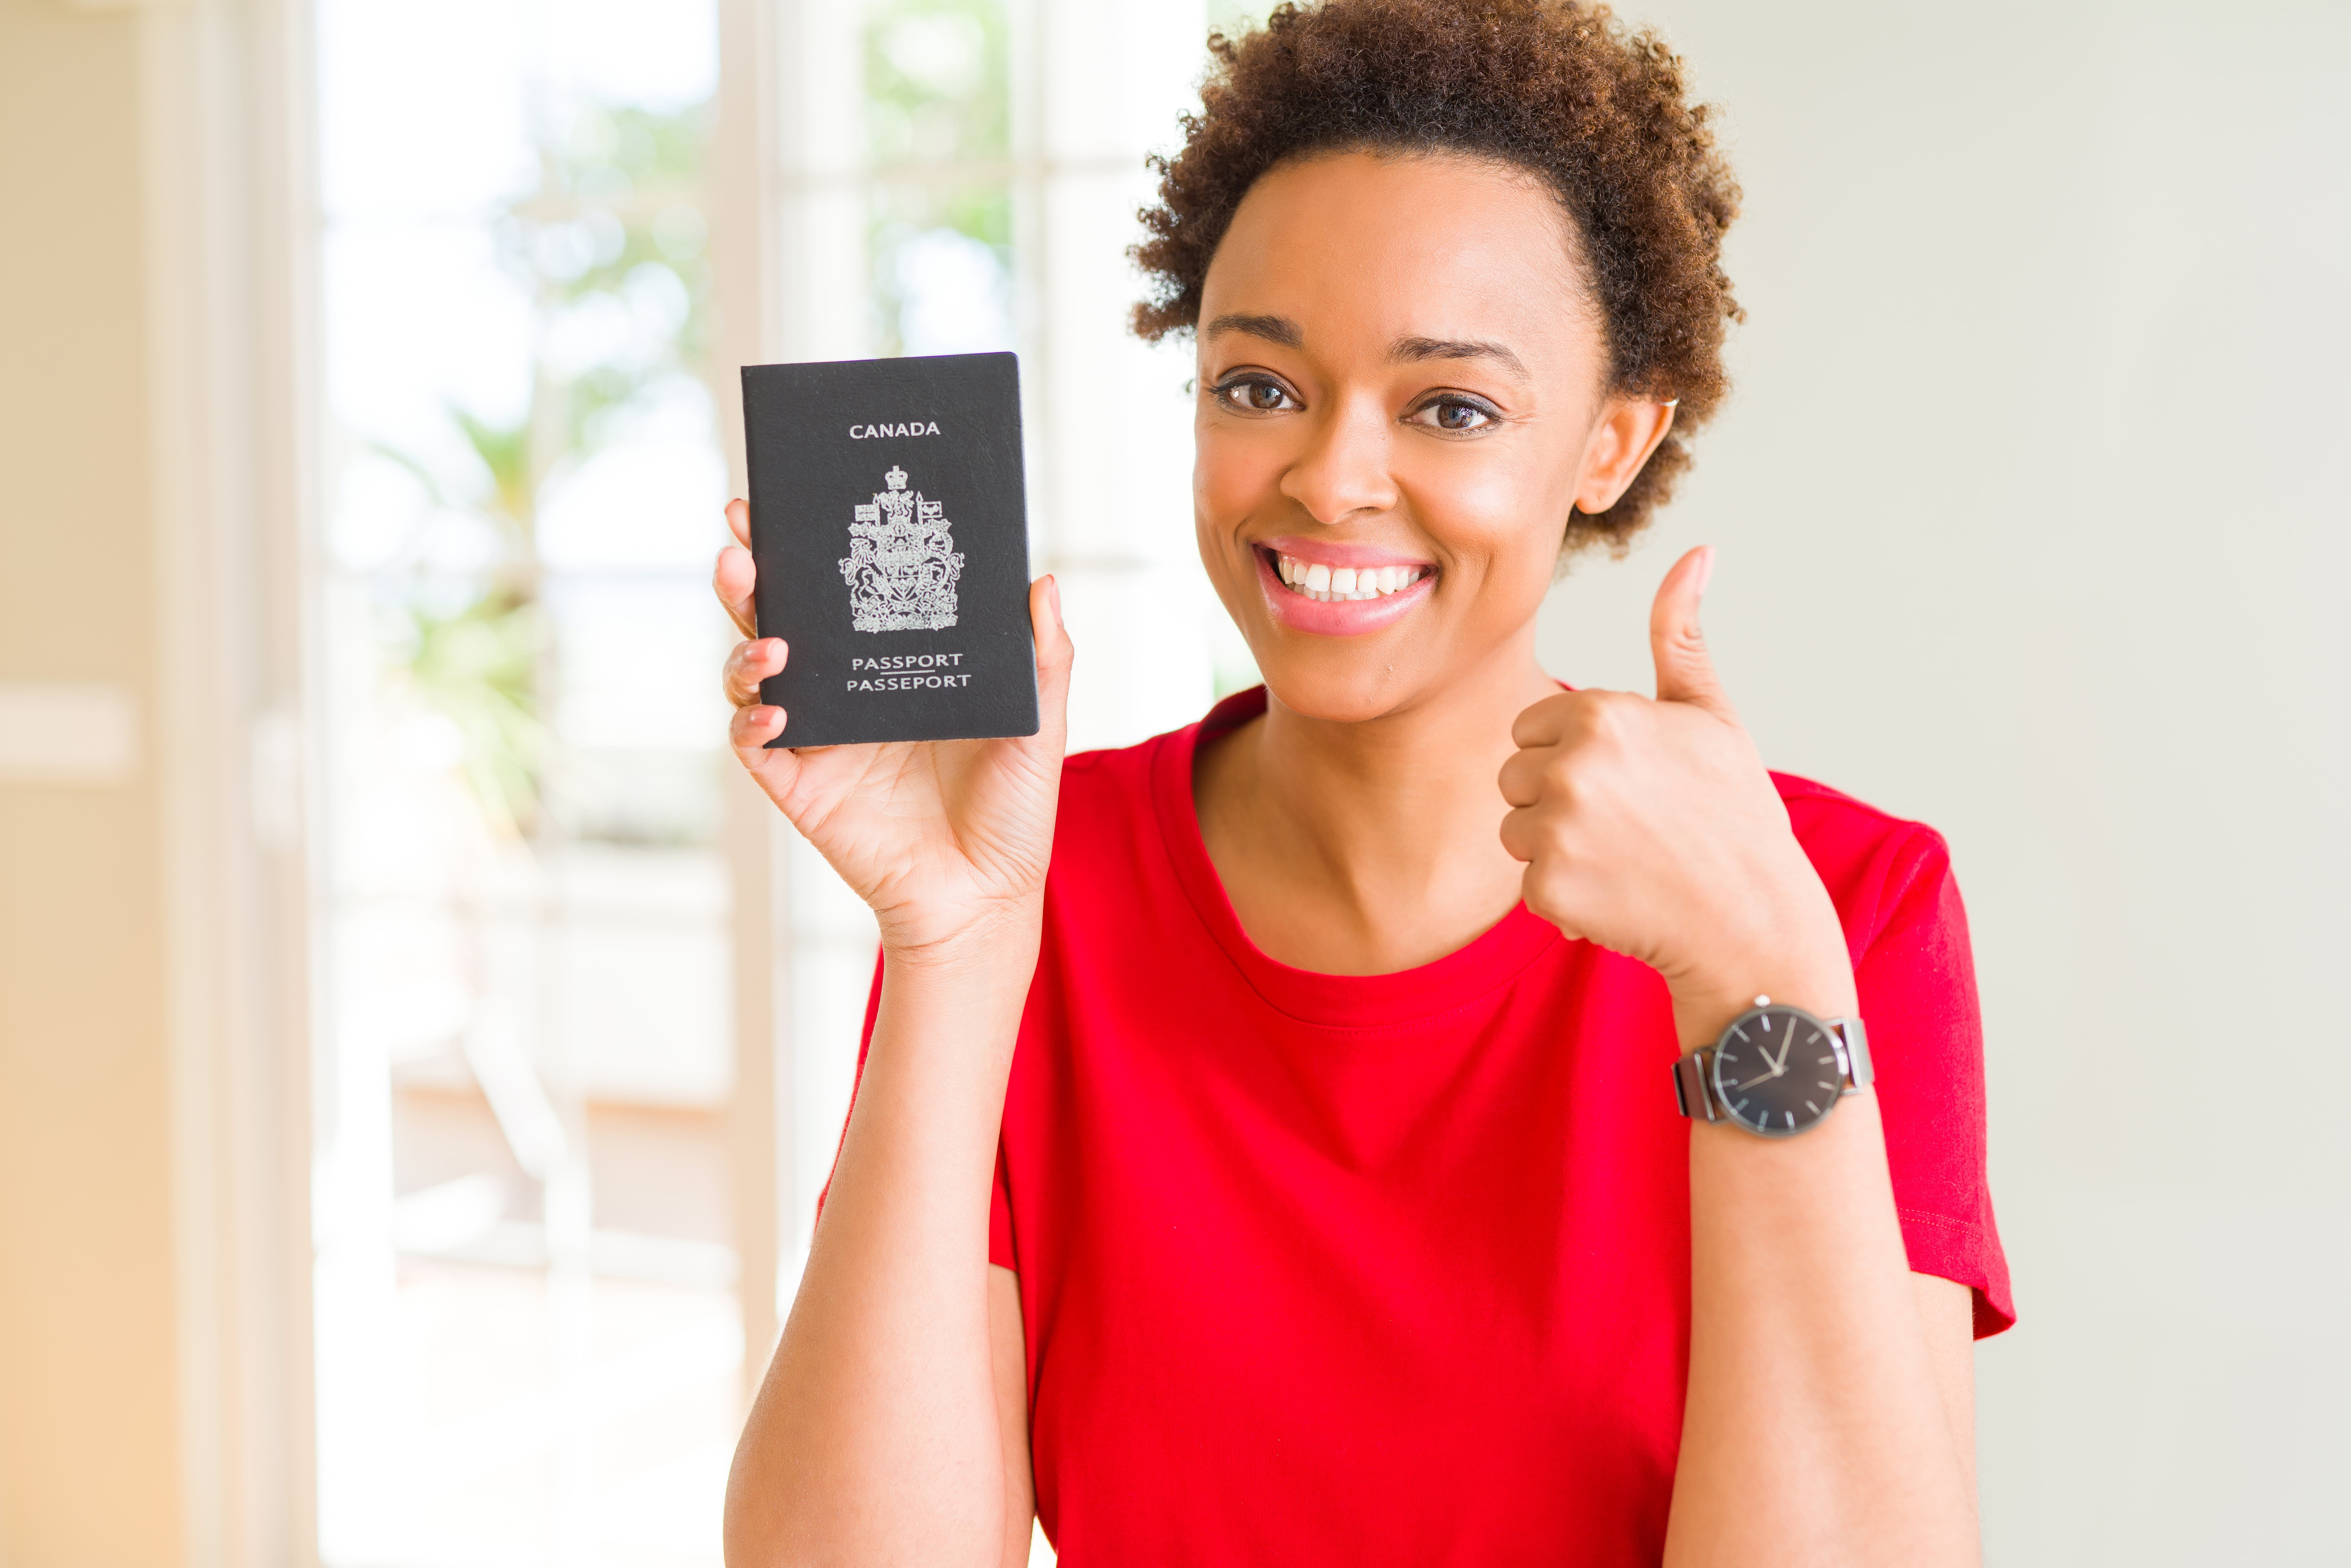 Woman holding passport and smiling